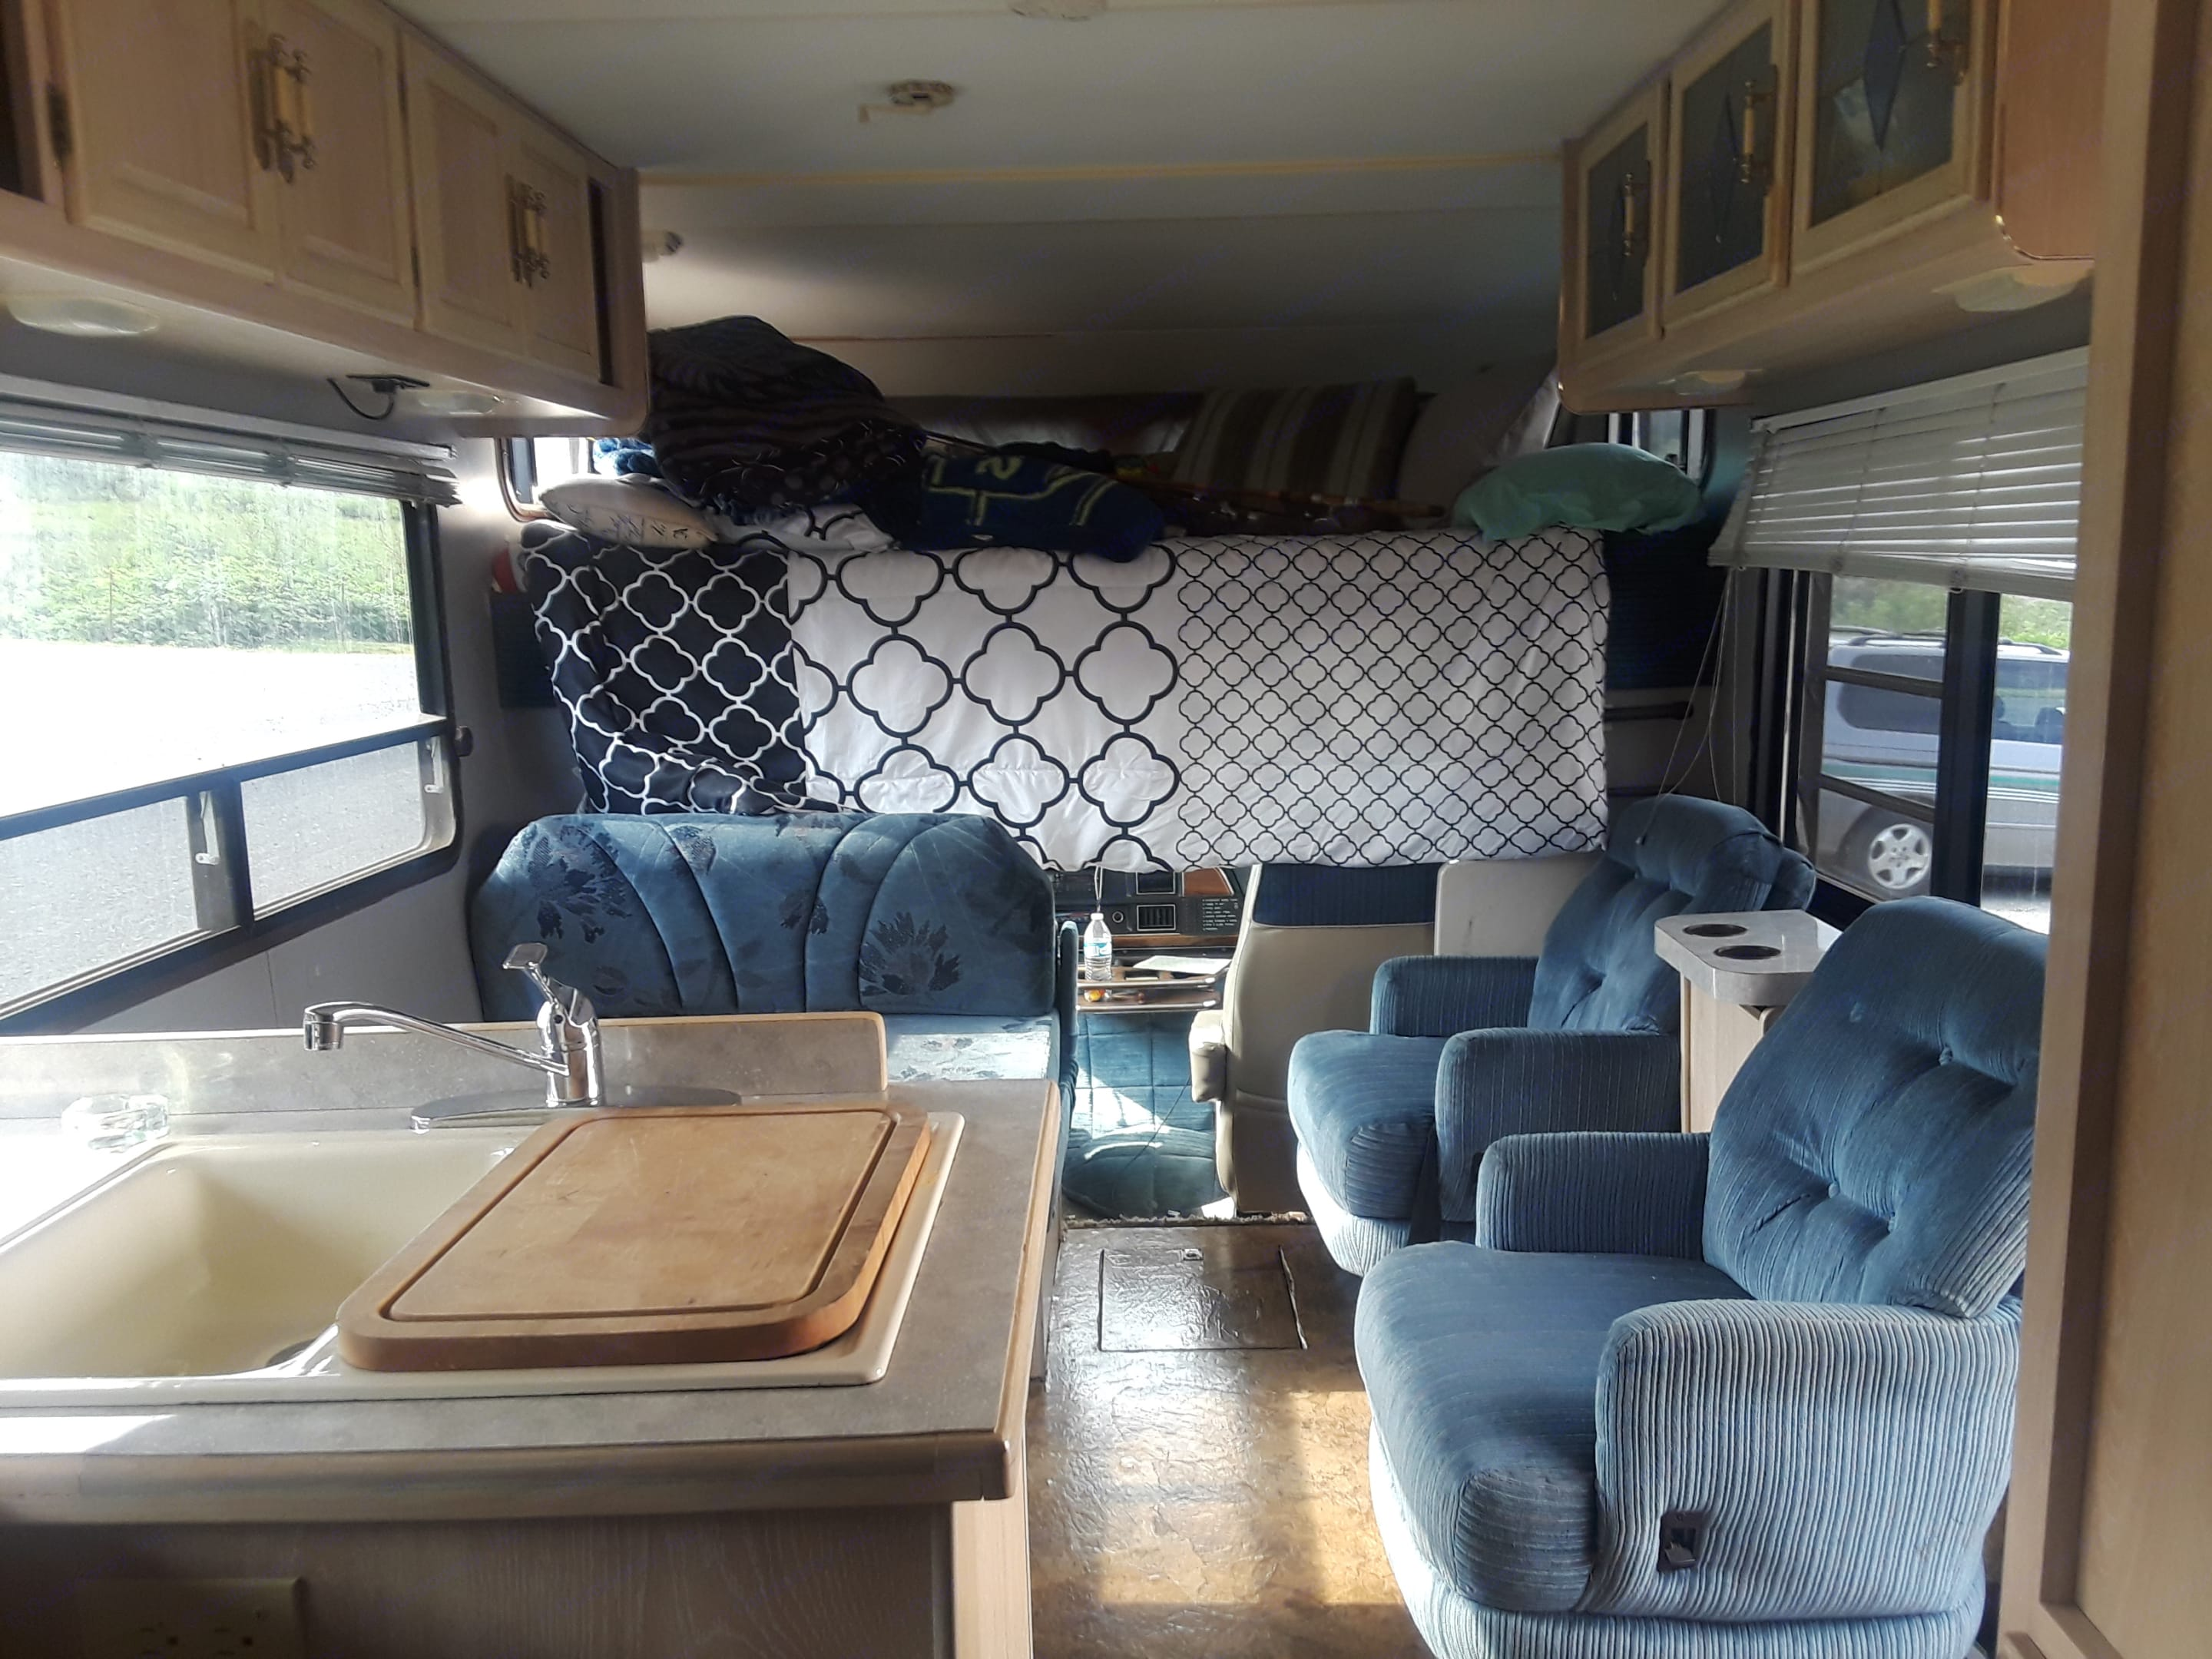 Upper bed and dining table from bathroom area. Coachmen Leprechaun 1991